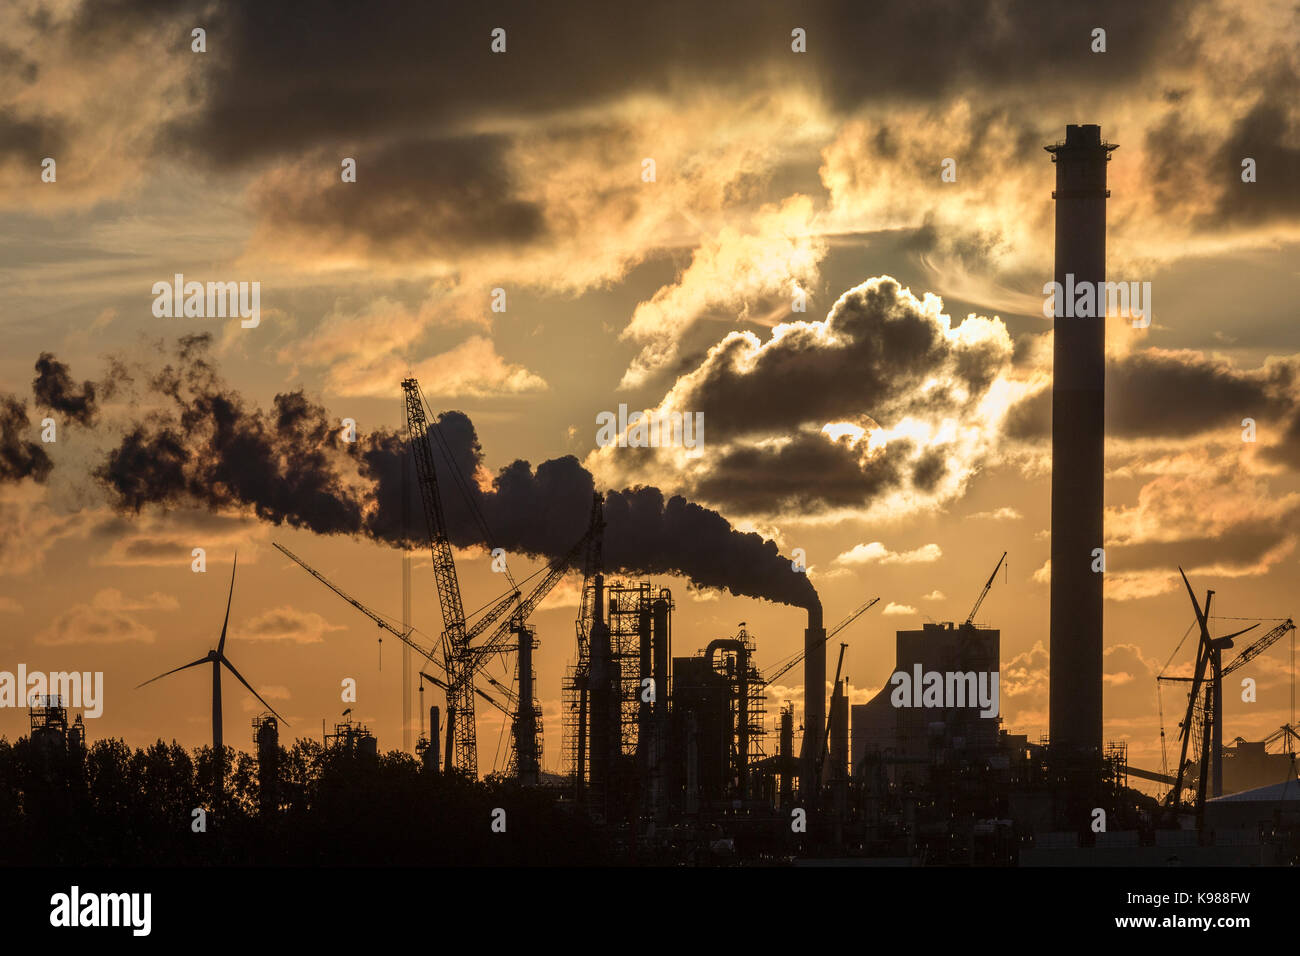 An industrial skyline at dusk - Rotterdam in the Netherlands. - Stock Image